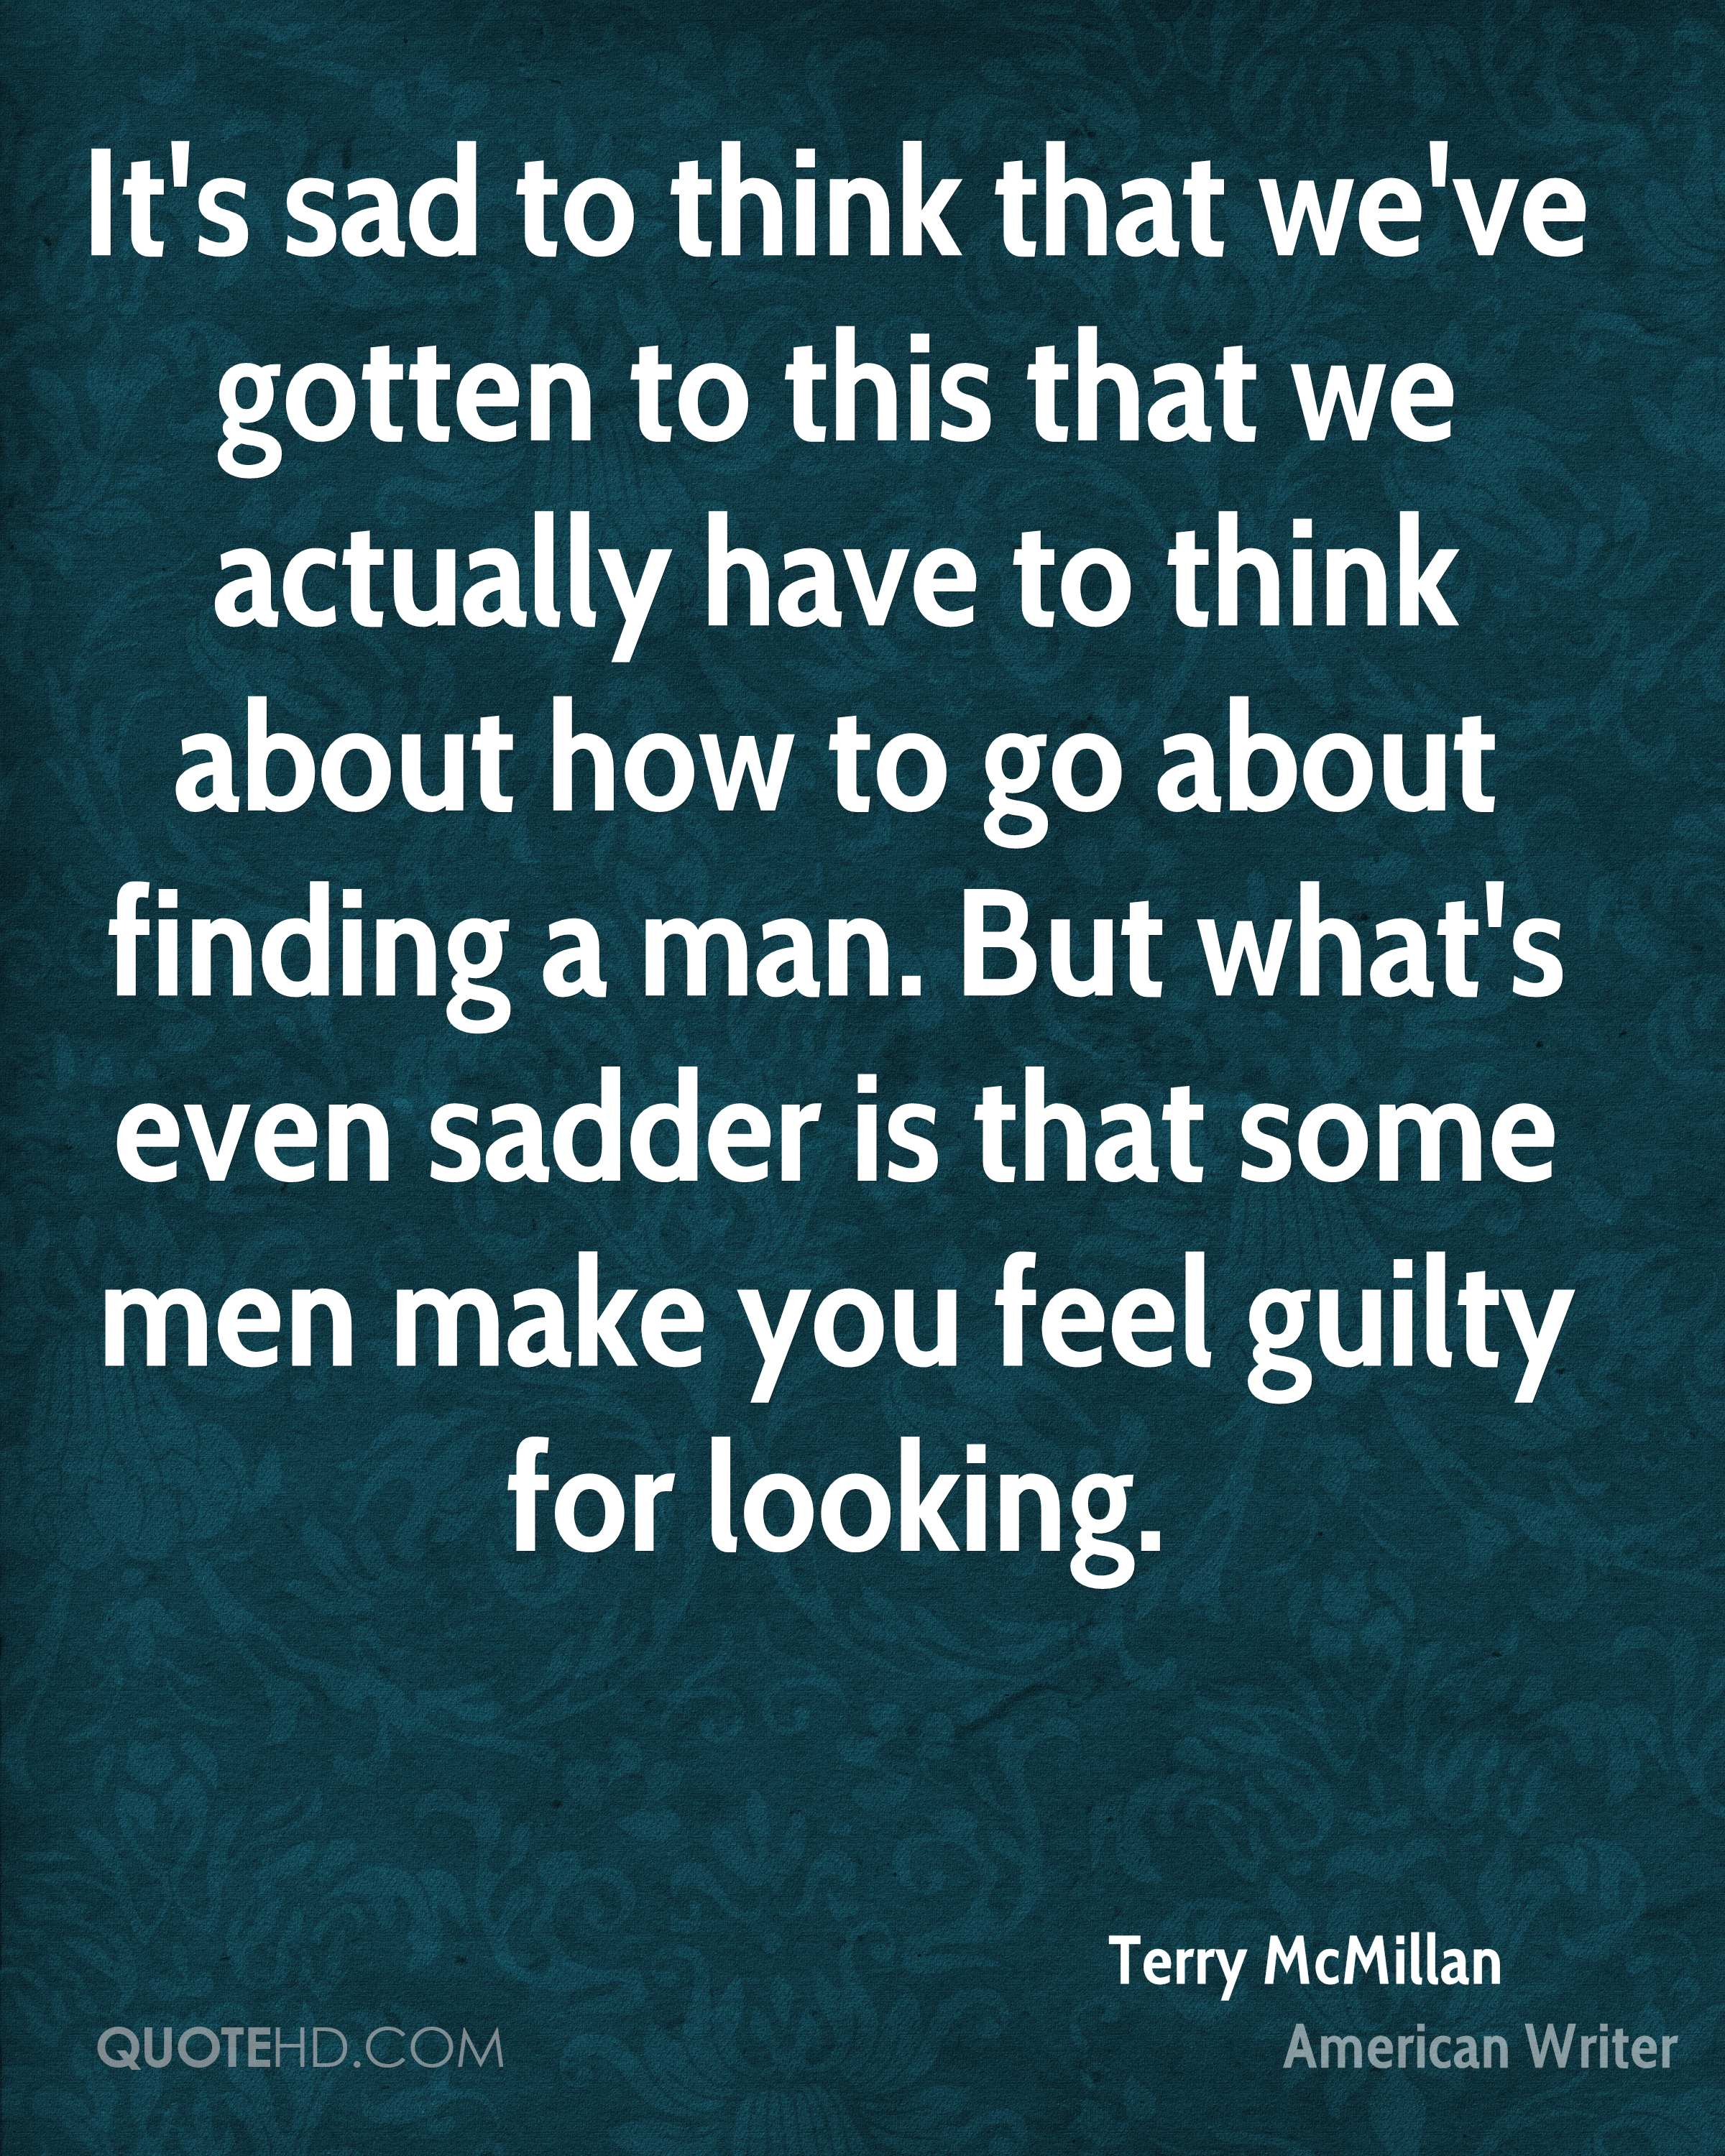 It's sad to think that we've gotten to this that we actually have to think about how to go about finding a man. But what's even sadder is that some men make you feel guilty for looking.